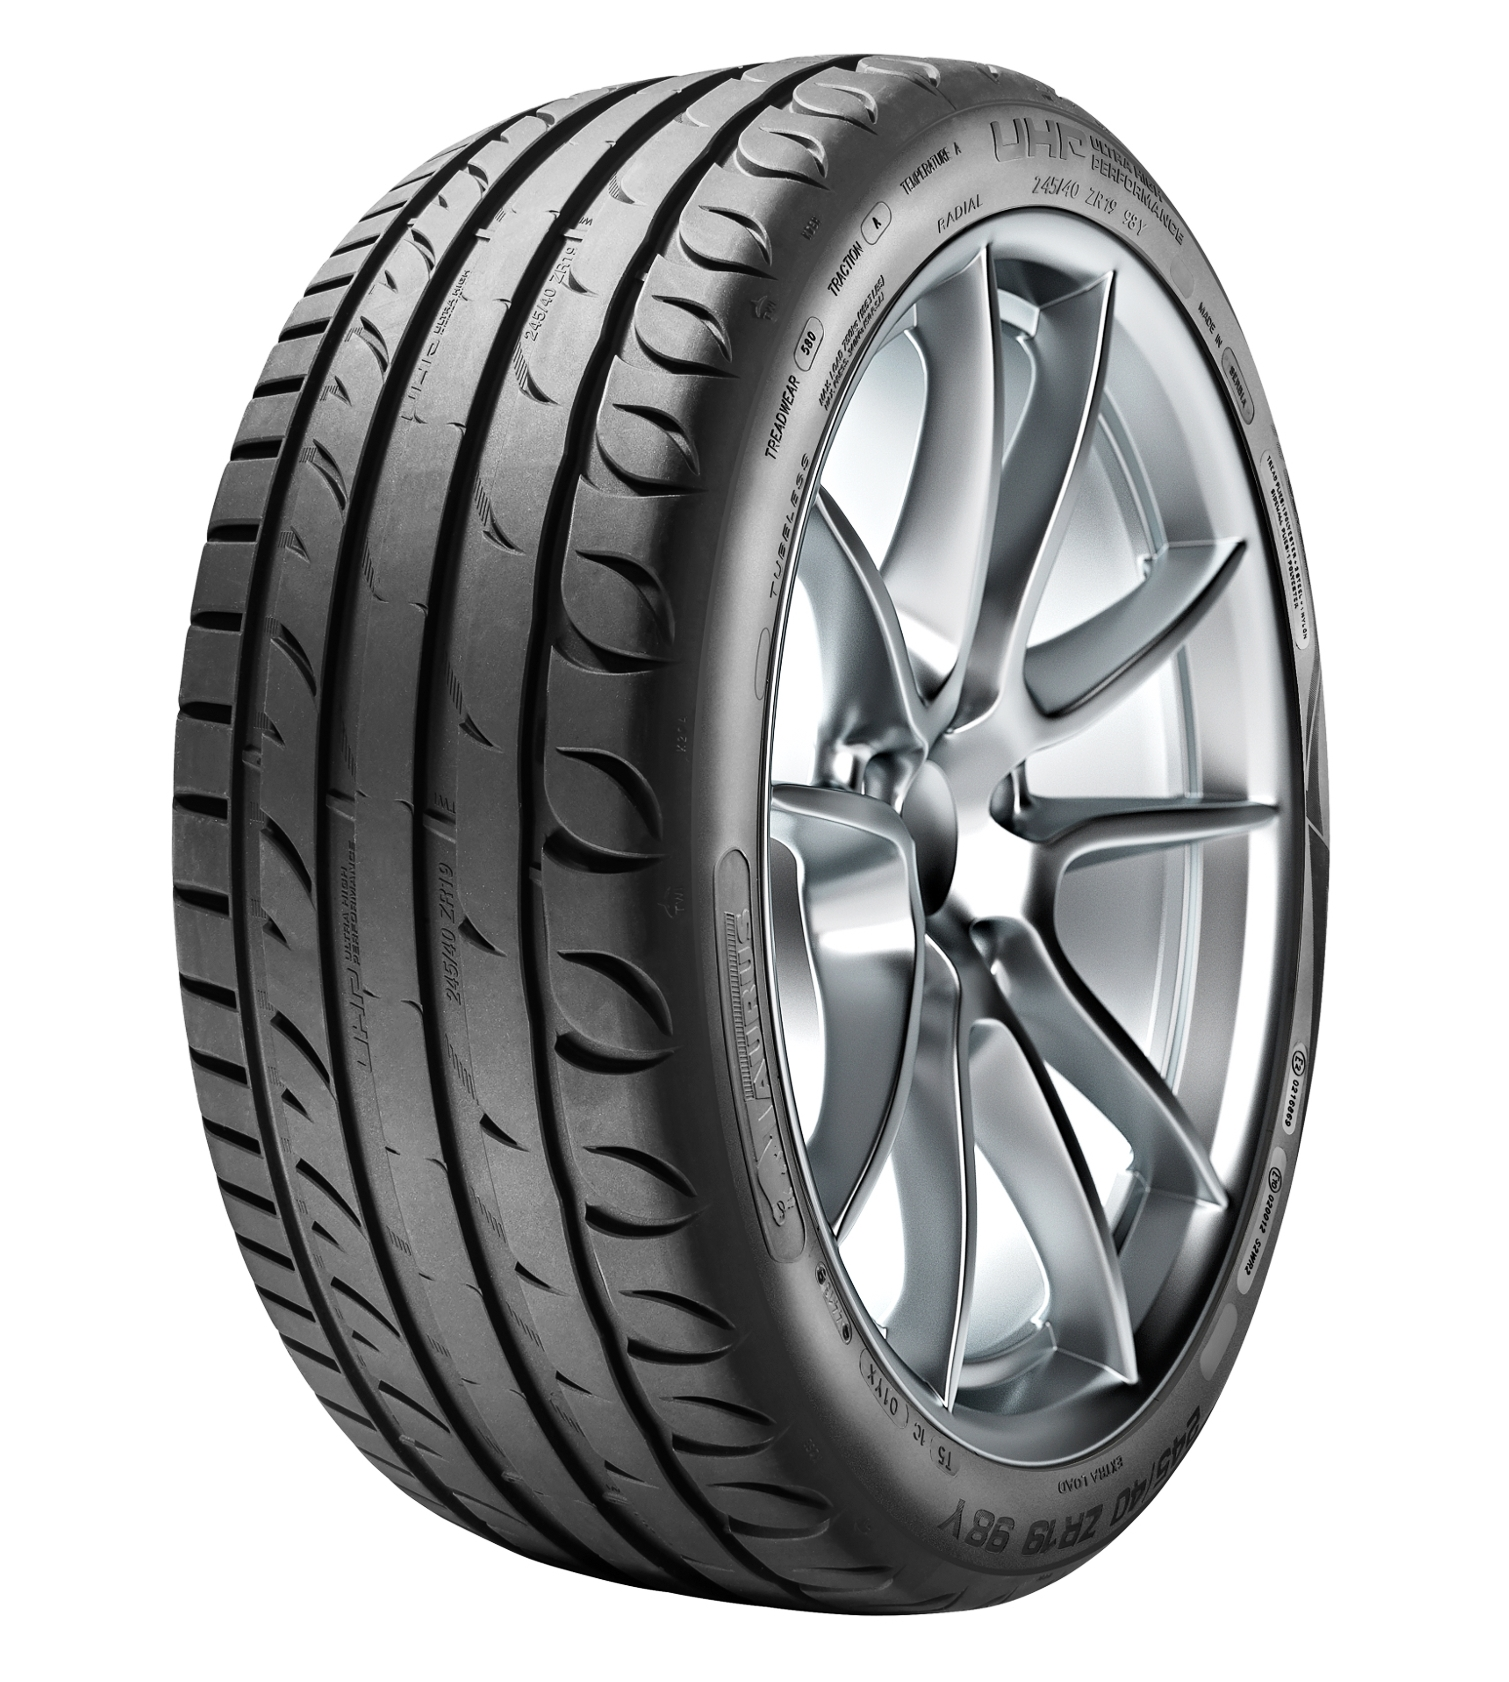 235/45 R18 [98] Y ULTRA HIGH PERFORMANCE XL - TAURUS